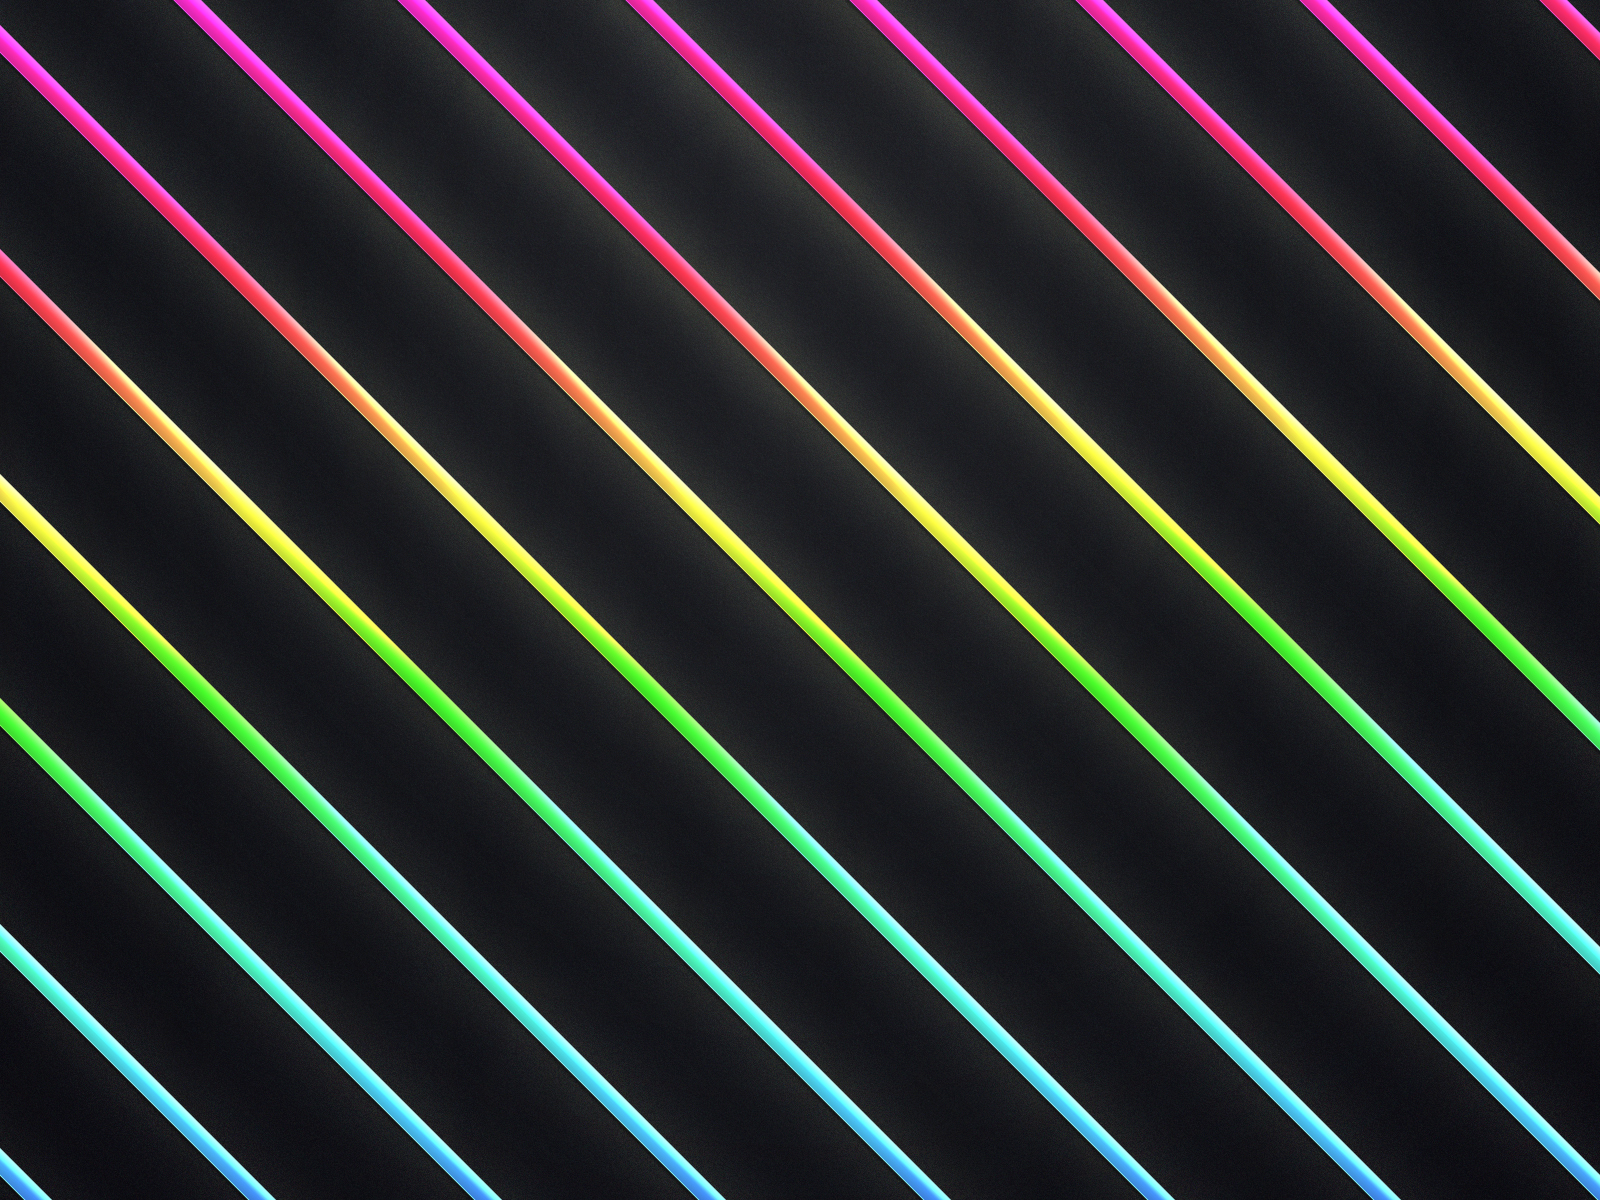 1600x1200 Neon - Diagonal disco desktop PC and Mac wallpaper